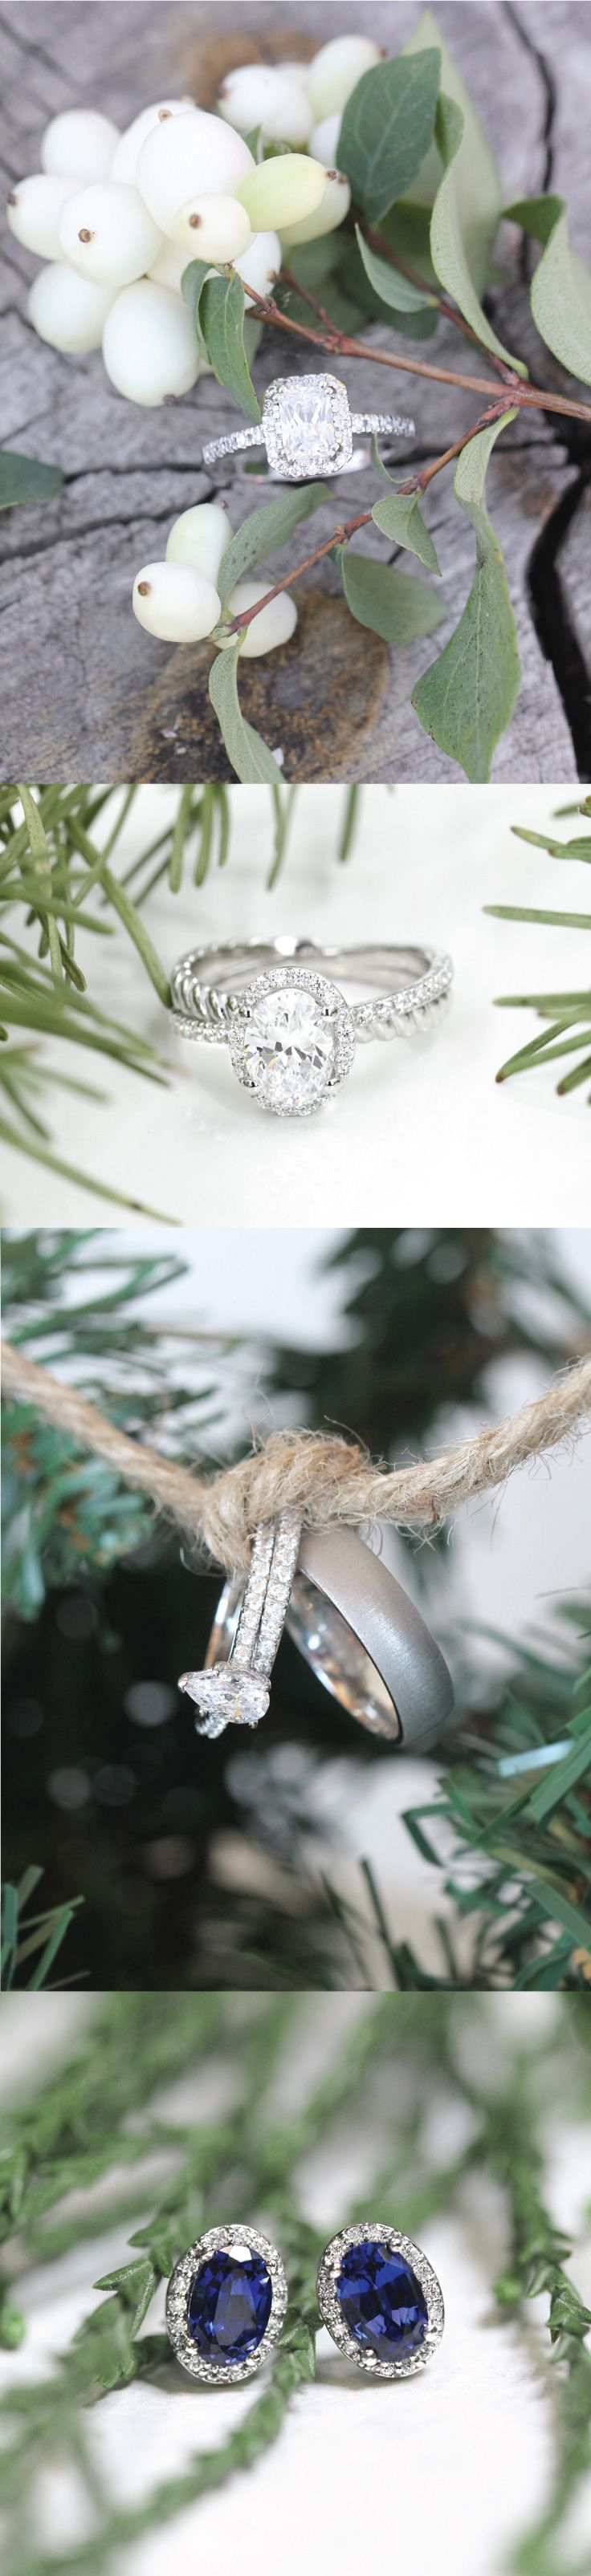 Top to bottom: Monica Engagement Ring, Terwilliger Two Tone Engagement Ring, Dove Wedding Set and Canyon Men's Band, Diamond Halo Earrings